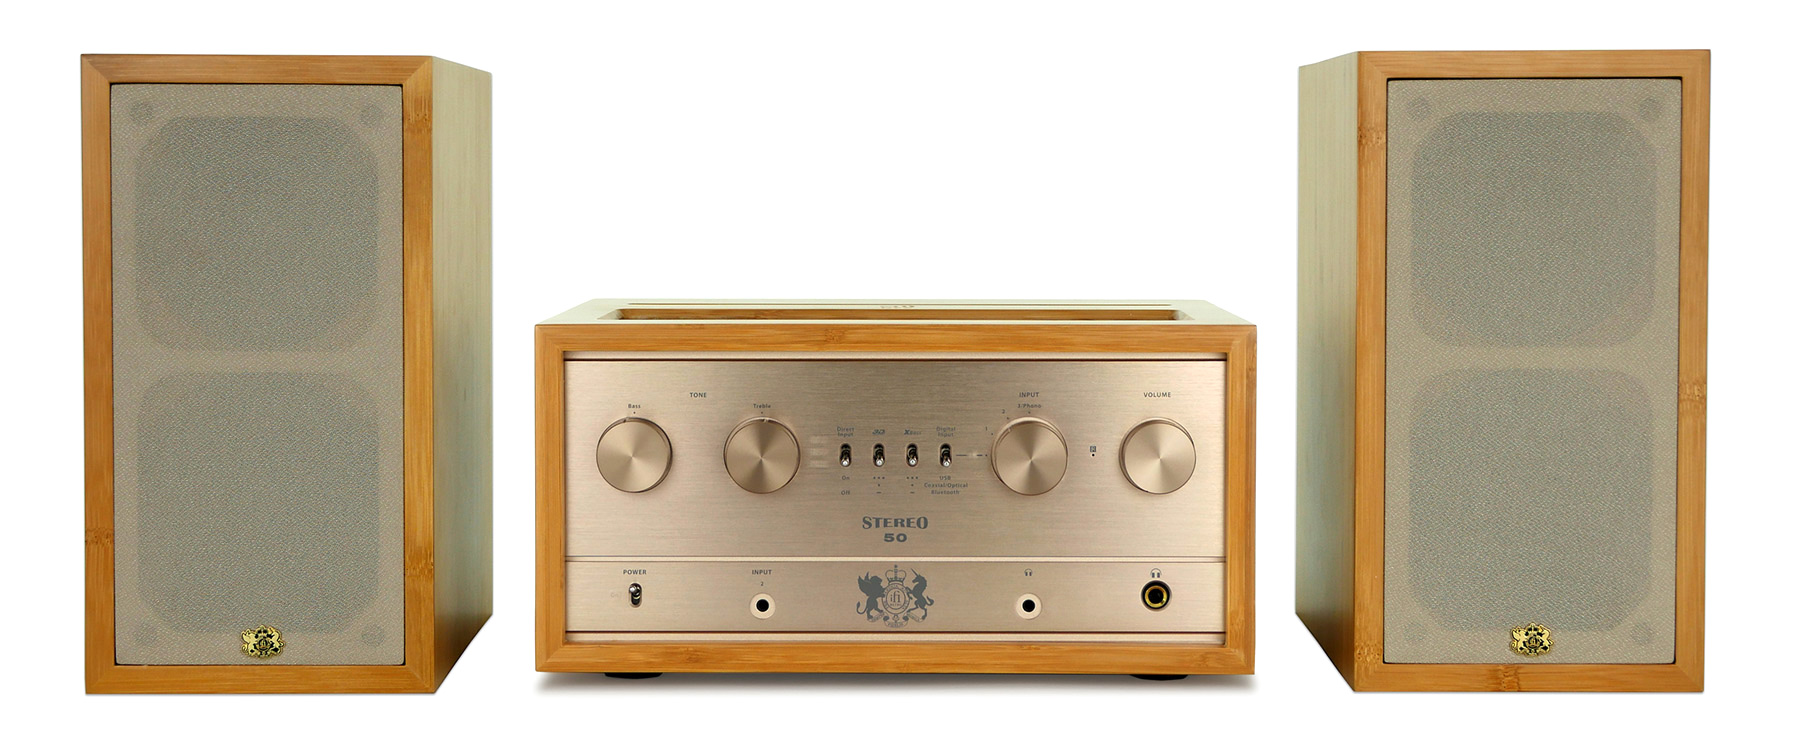 Retro Stereo 50 By Ifi Audio Integrated Tube Amplifier With Bluetooth Basics A Modern System Has Two